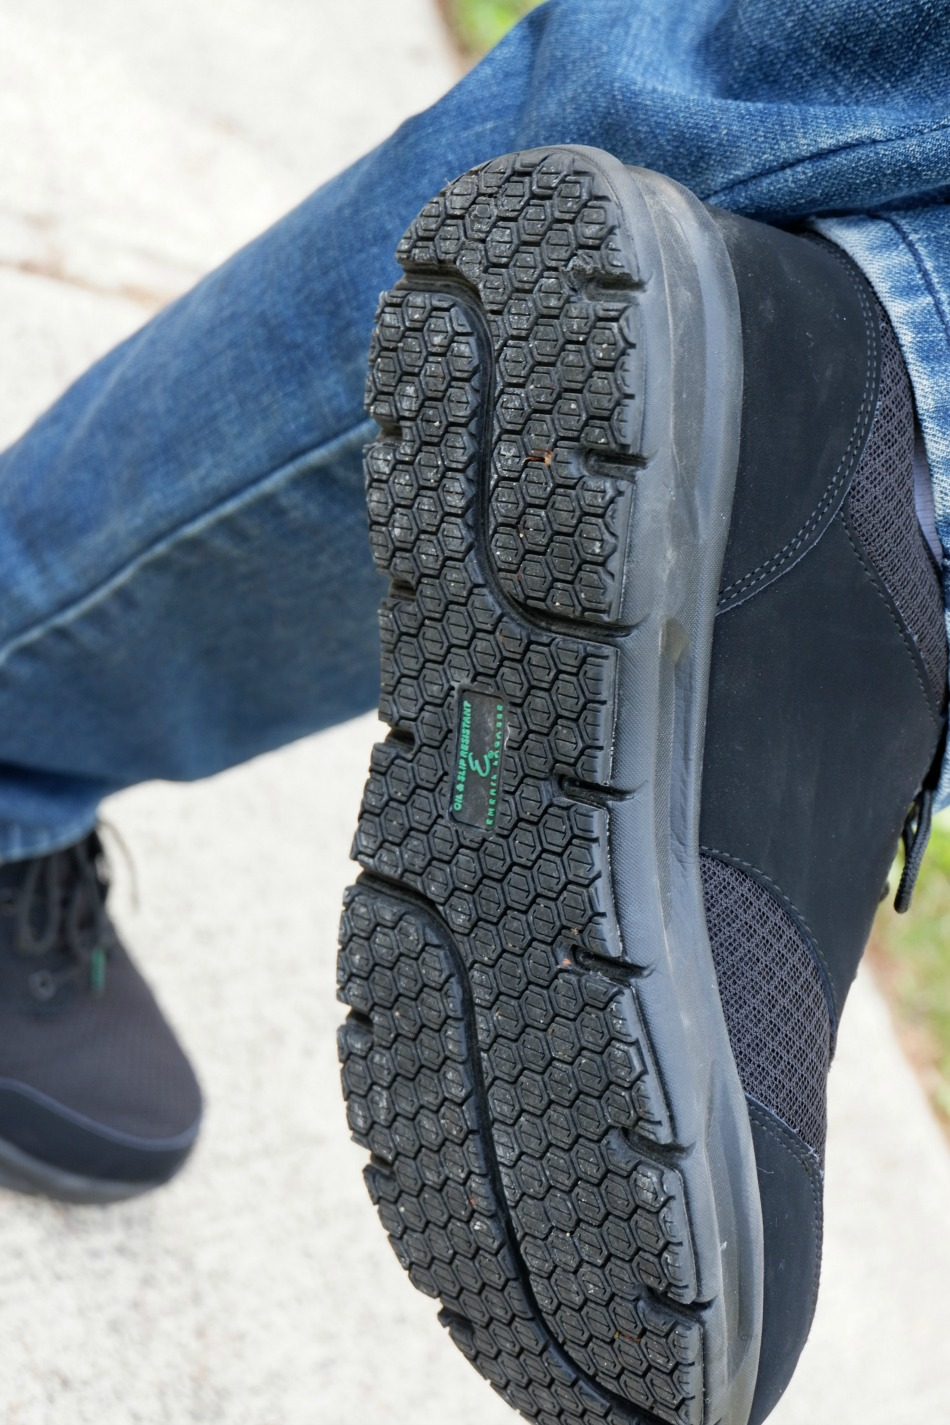 slip resistant shoes from Emeril's Footwear